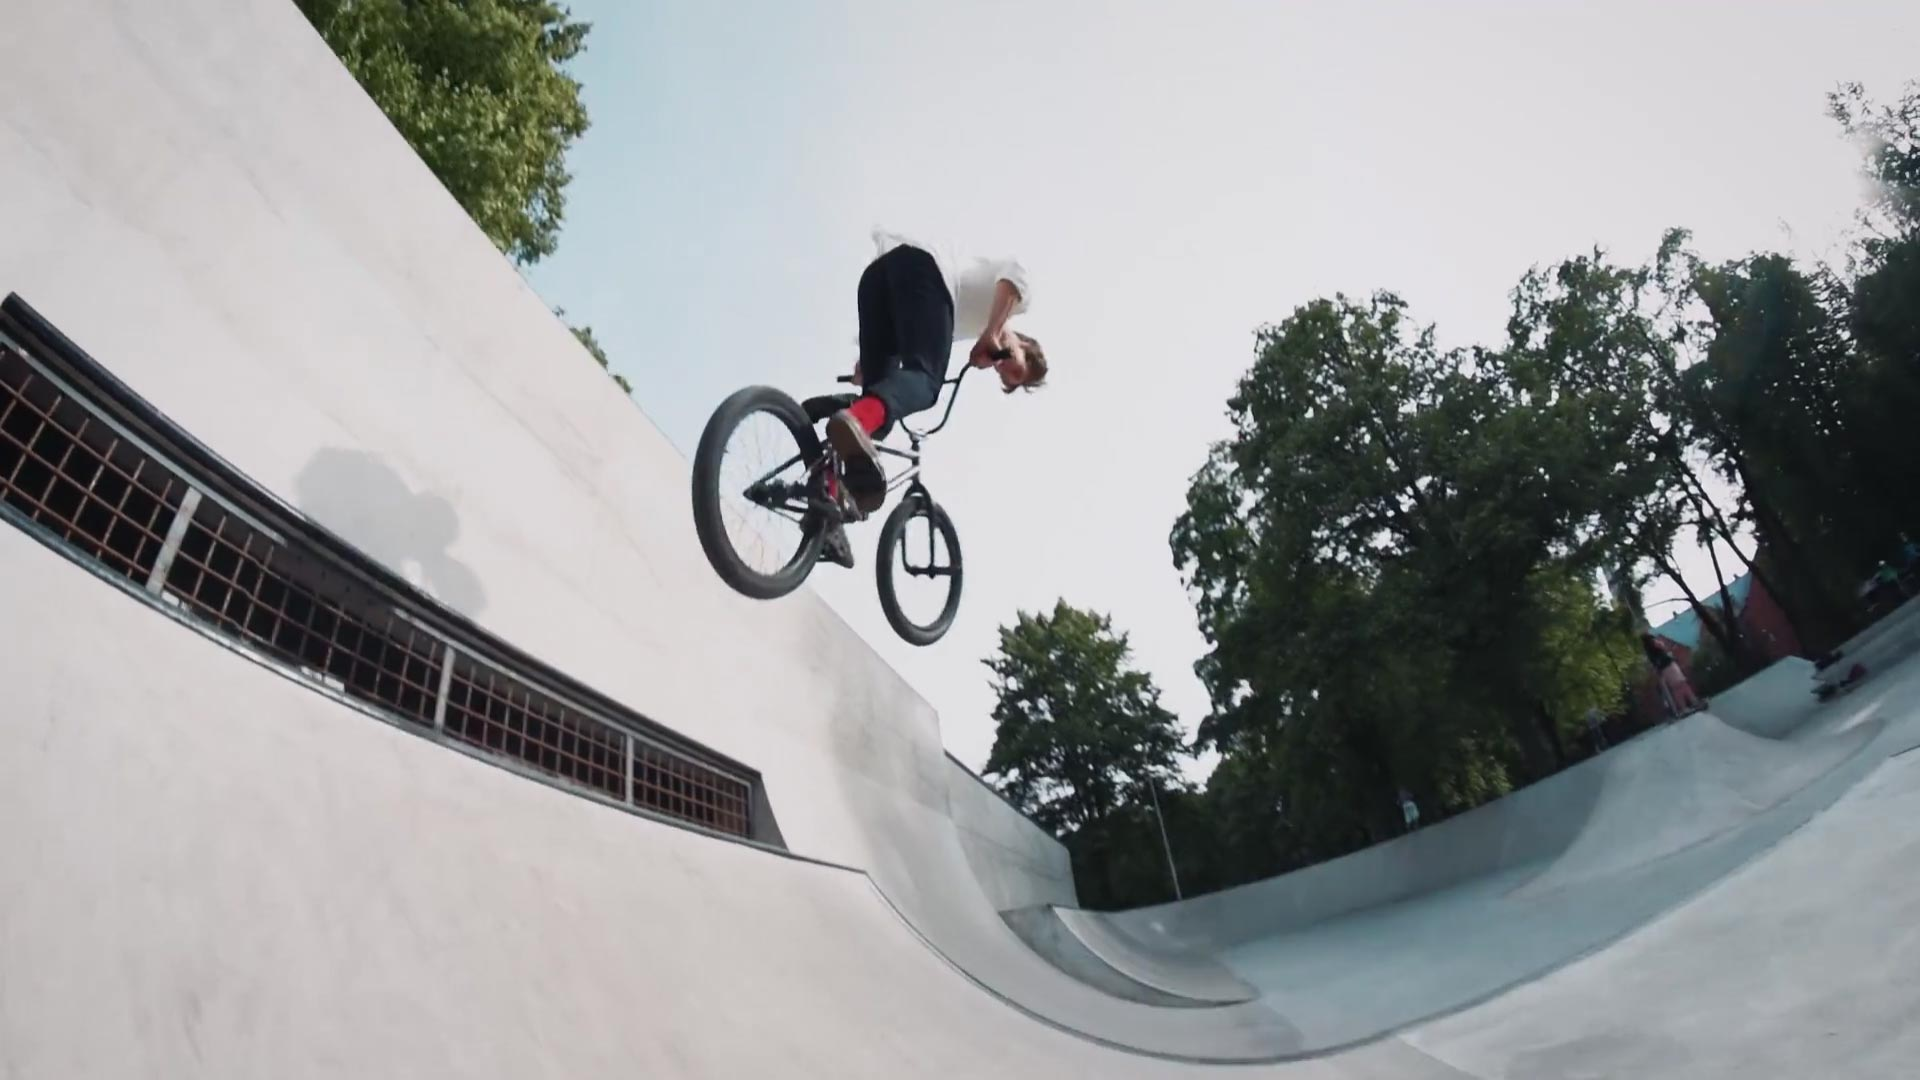 PARBMX: Kārlis Leitis - Welcome To The Team